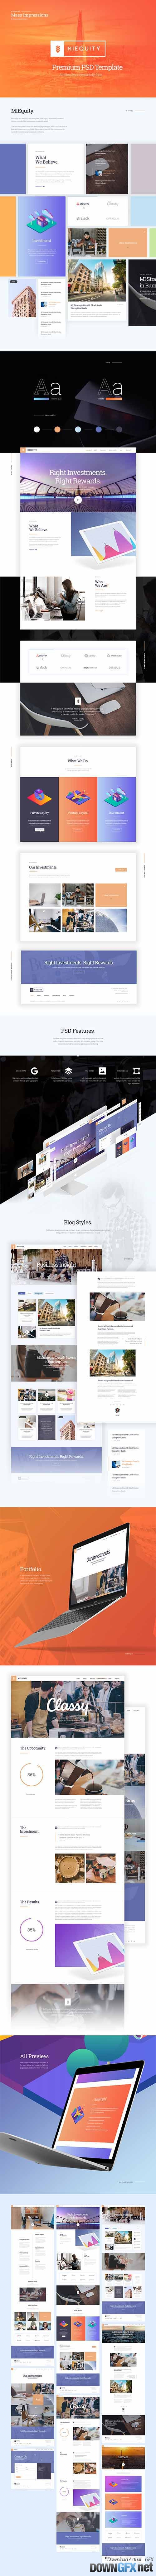 PSD Web Template - MIEQUITY - Business Theme